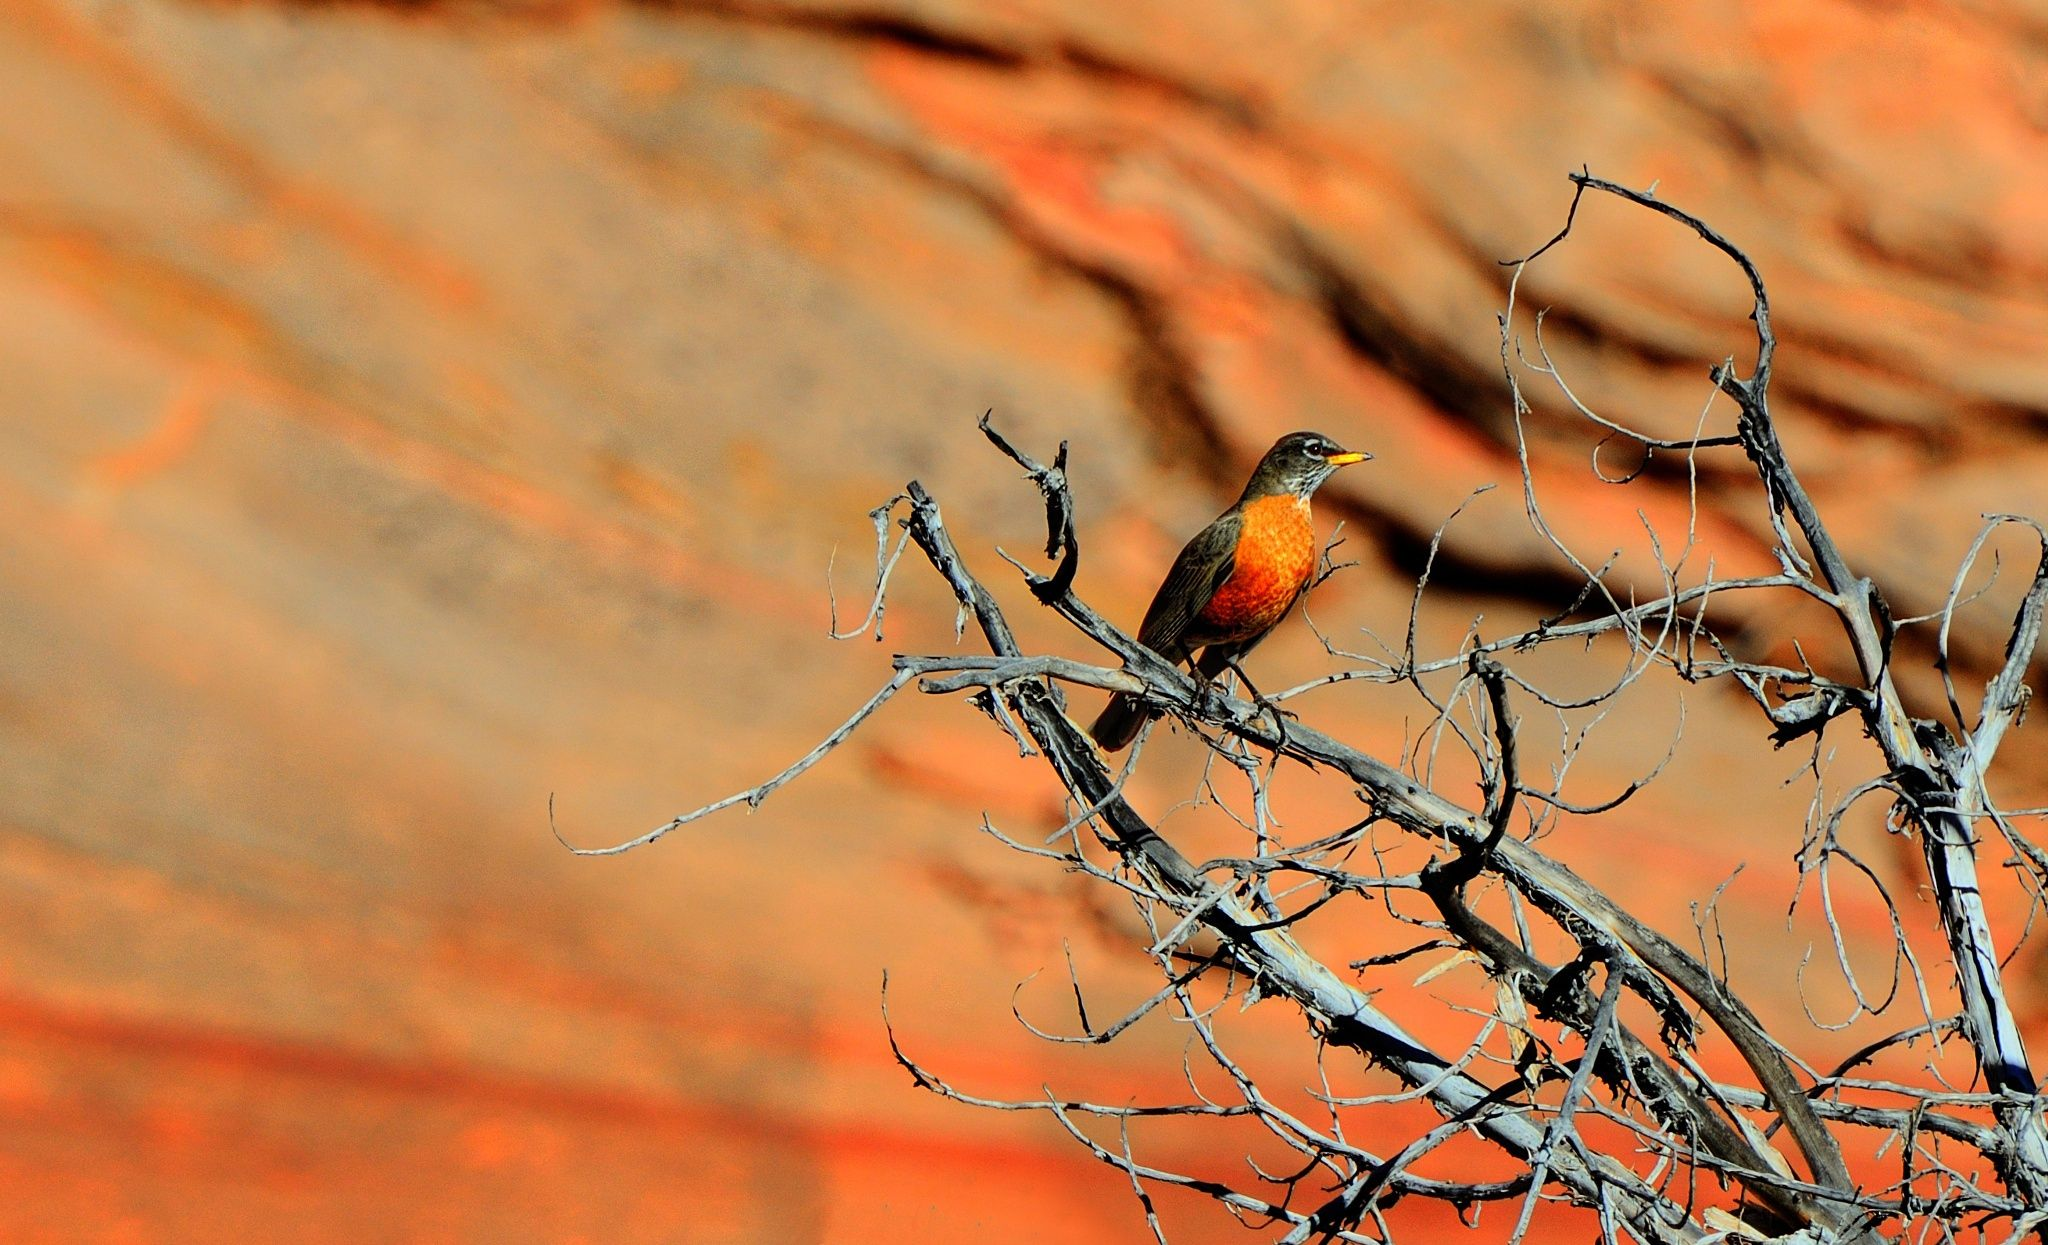 A birdie chirping somewhere in Zion National Park.